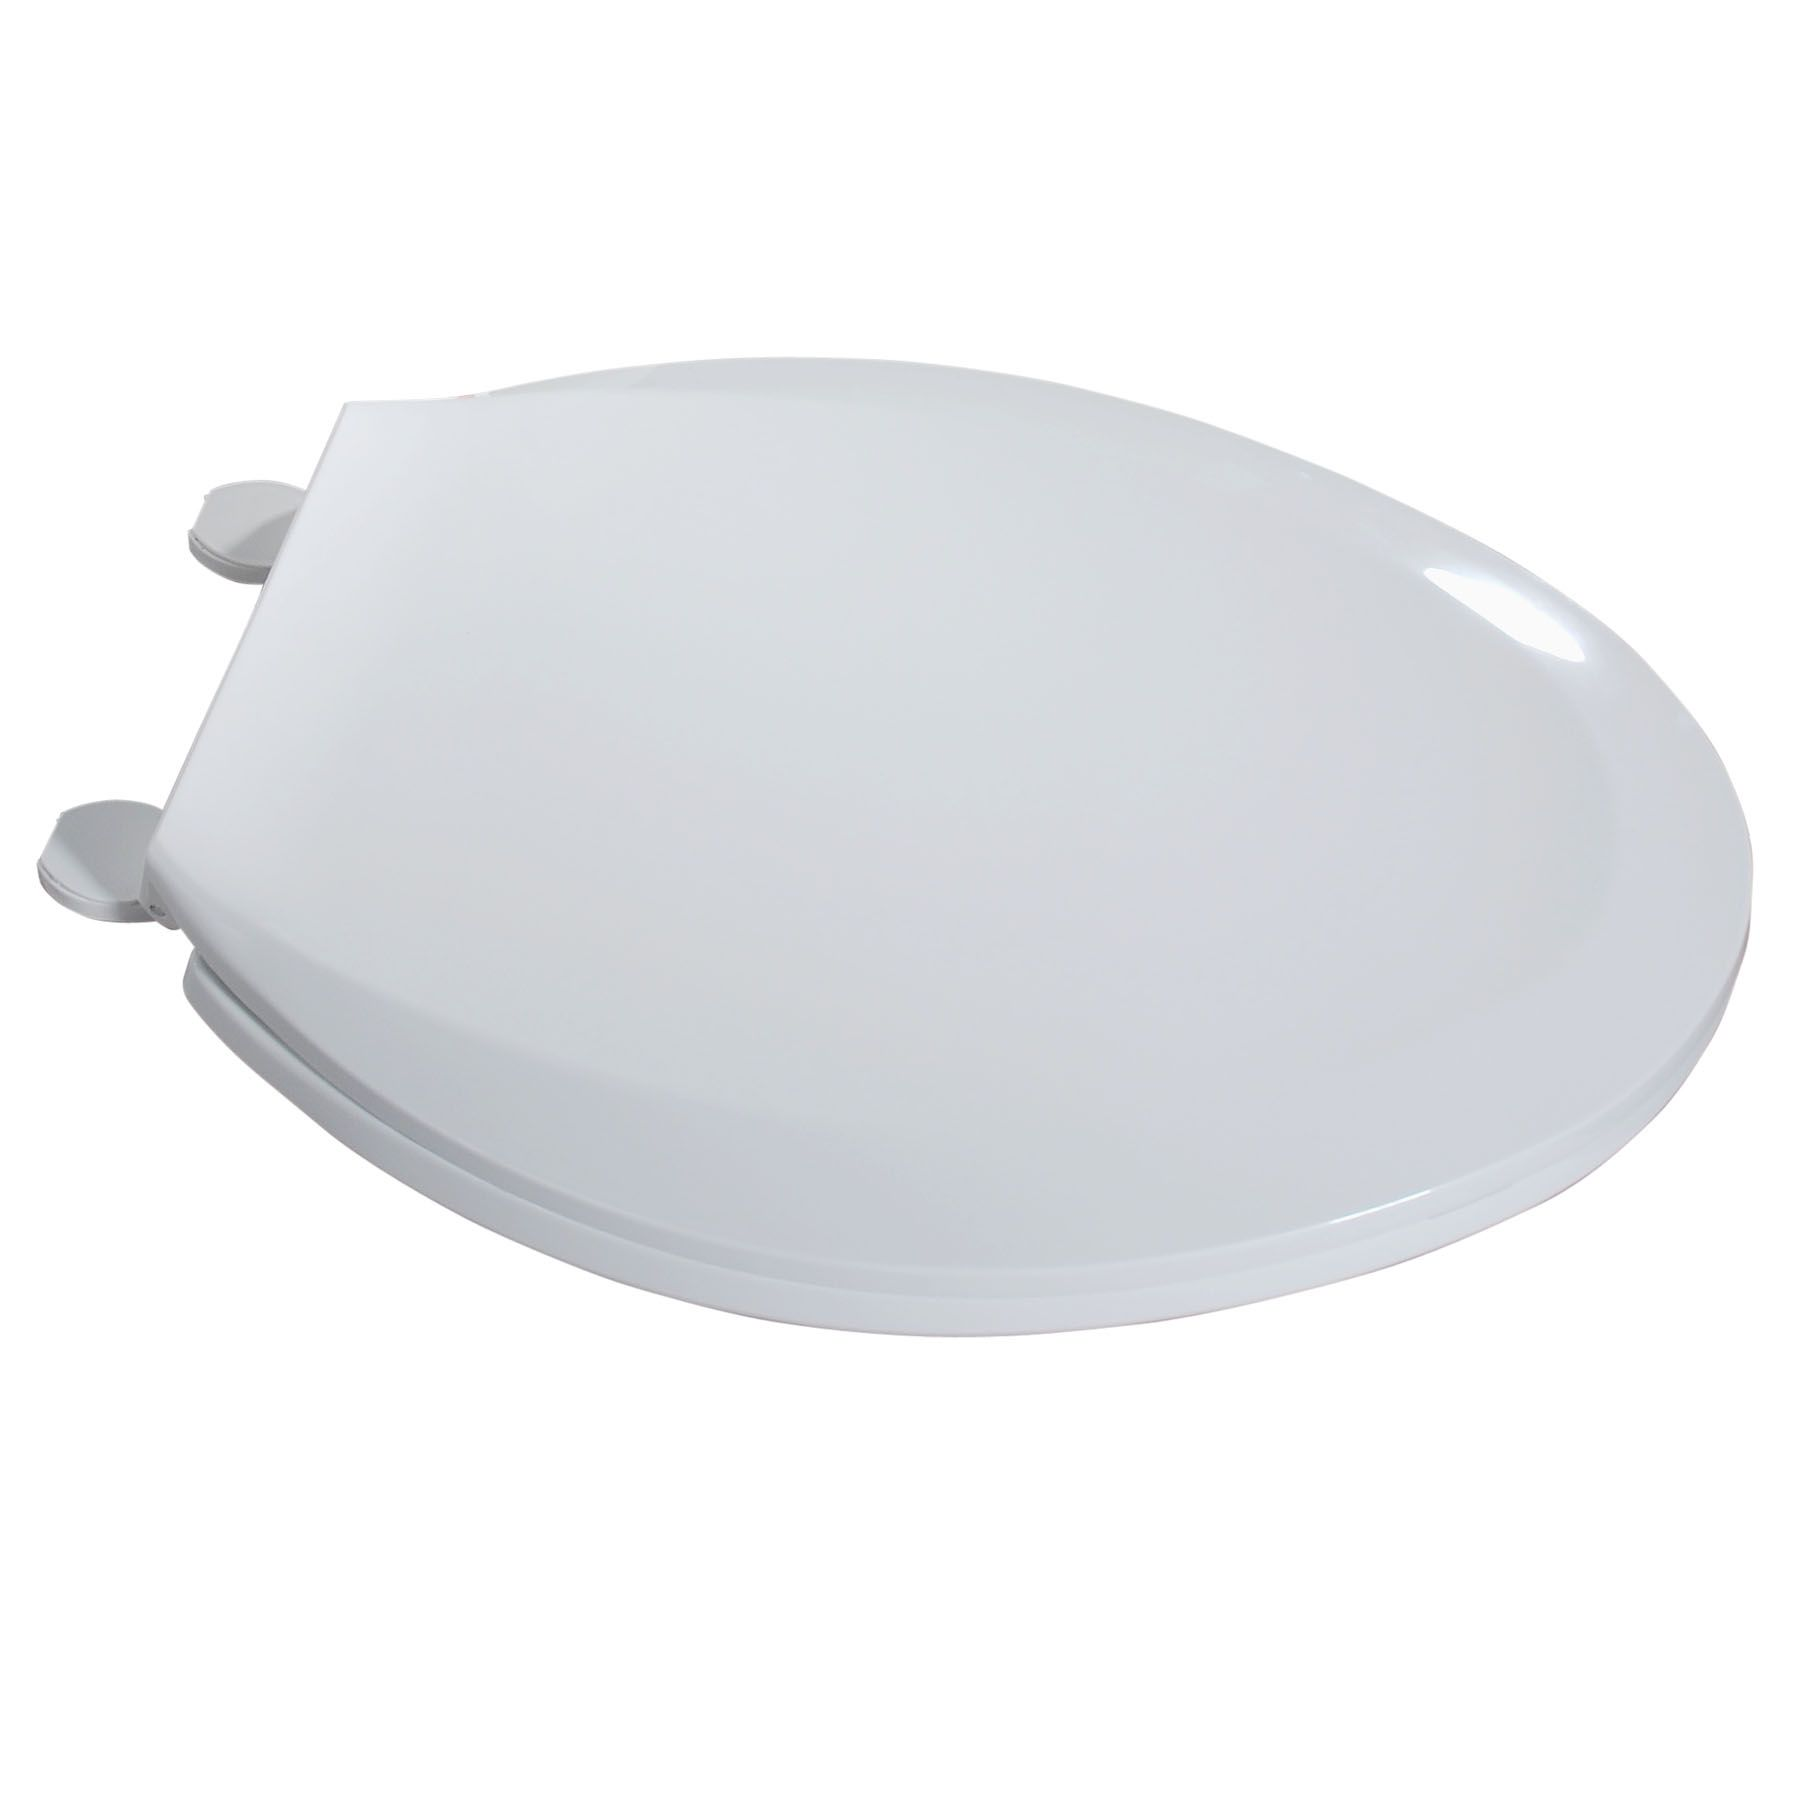 Plastic Elongated Toilet Seat in White